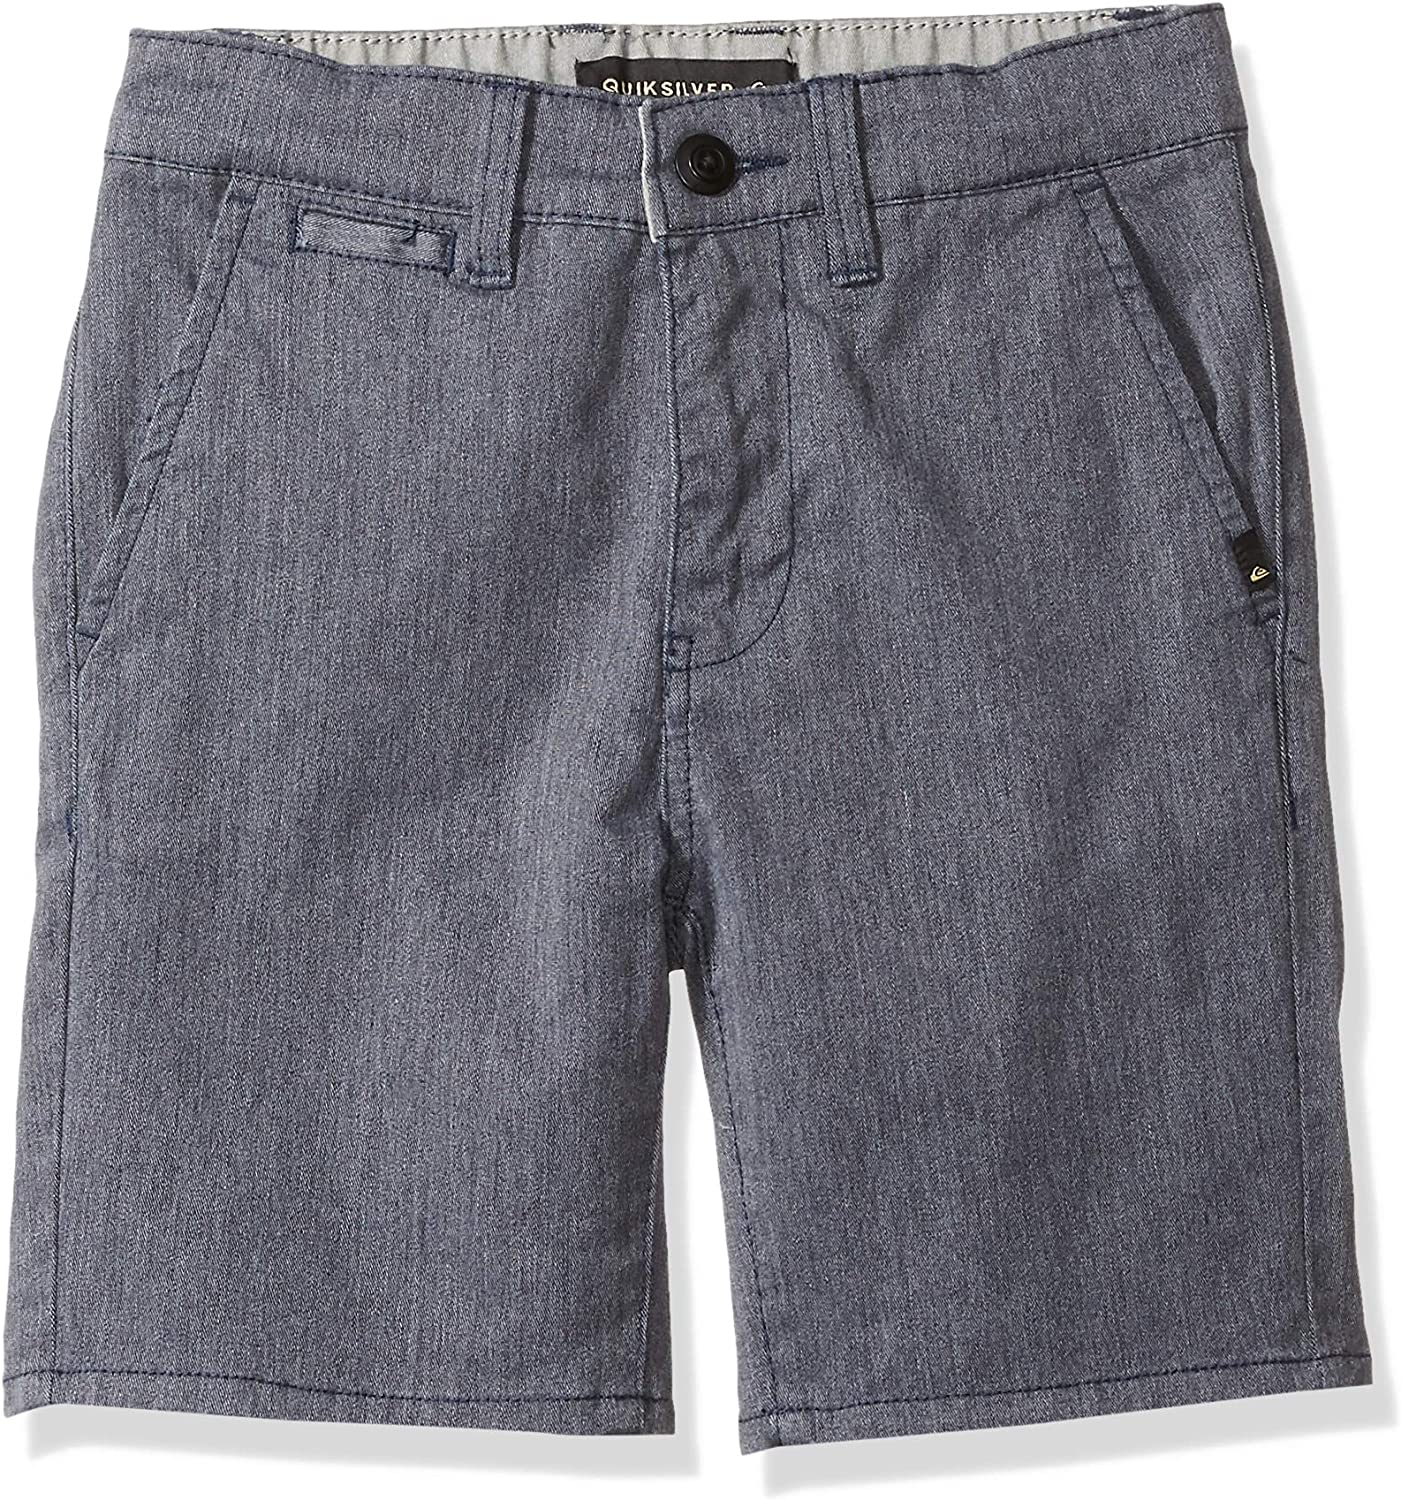 Quiksilver Boys Big New Everyday Union Stretch Youth Walk Short